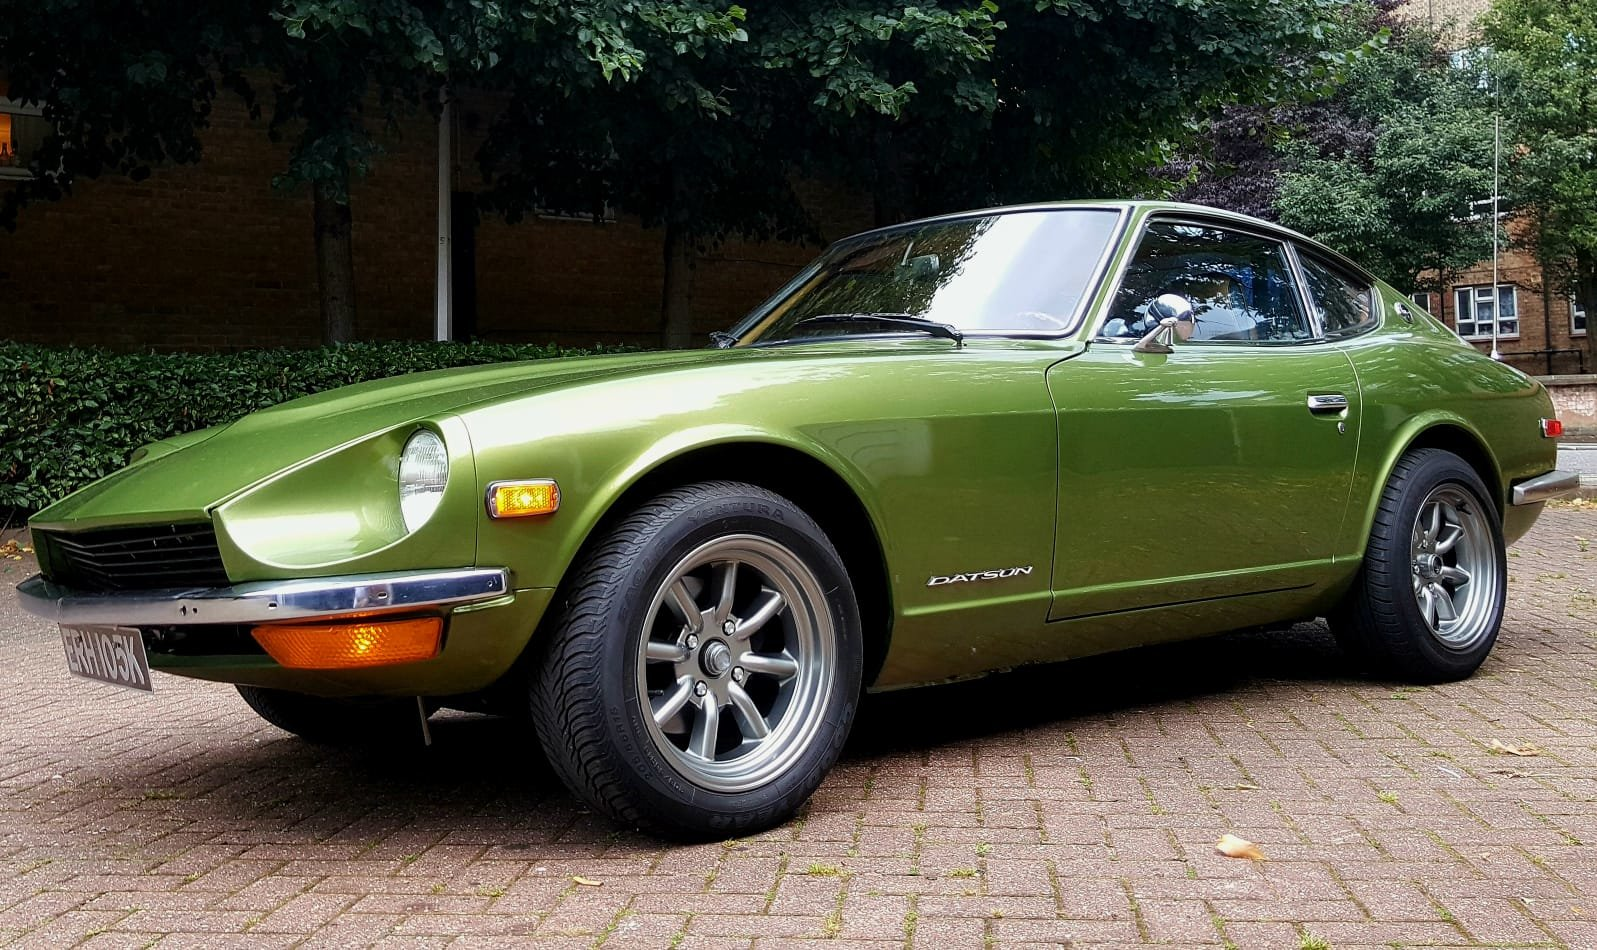 1972 Datsun 240z Metallic Racing green For Sale (picture 2 of 6)